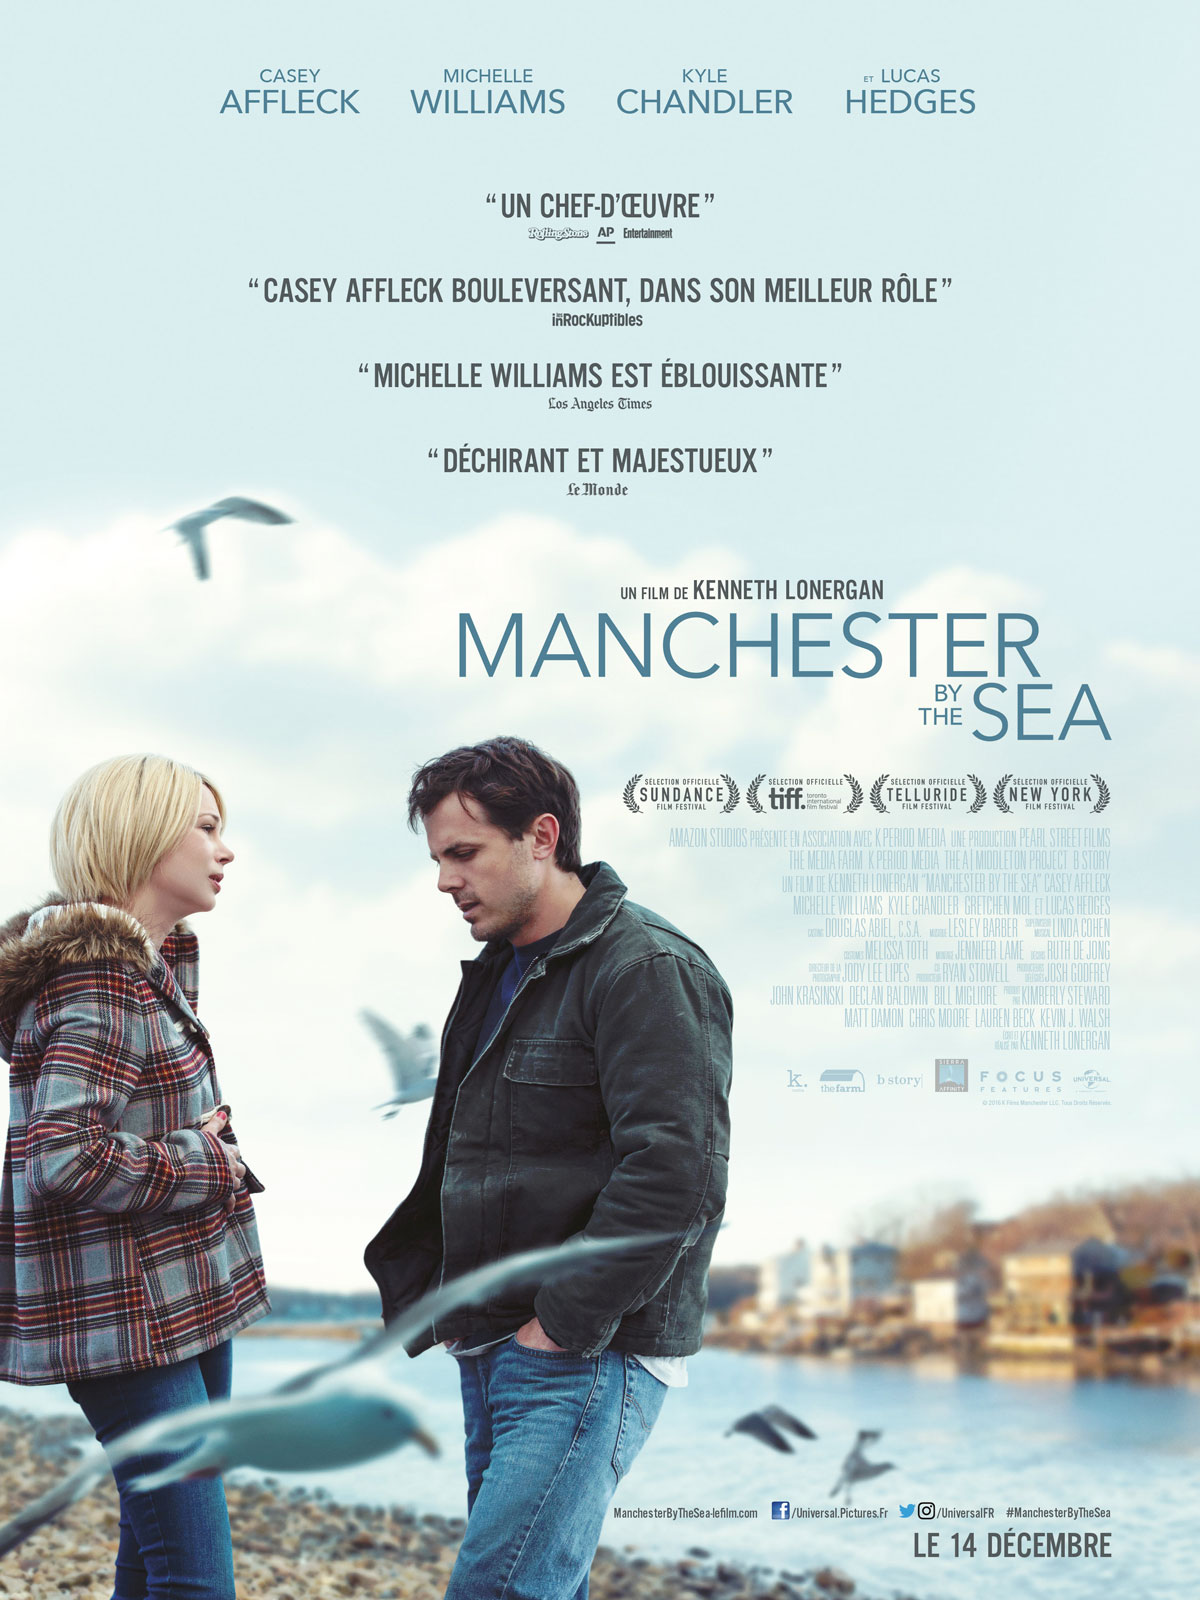 logo: Manchester by the sea